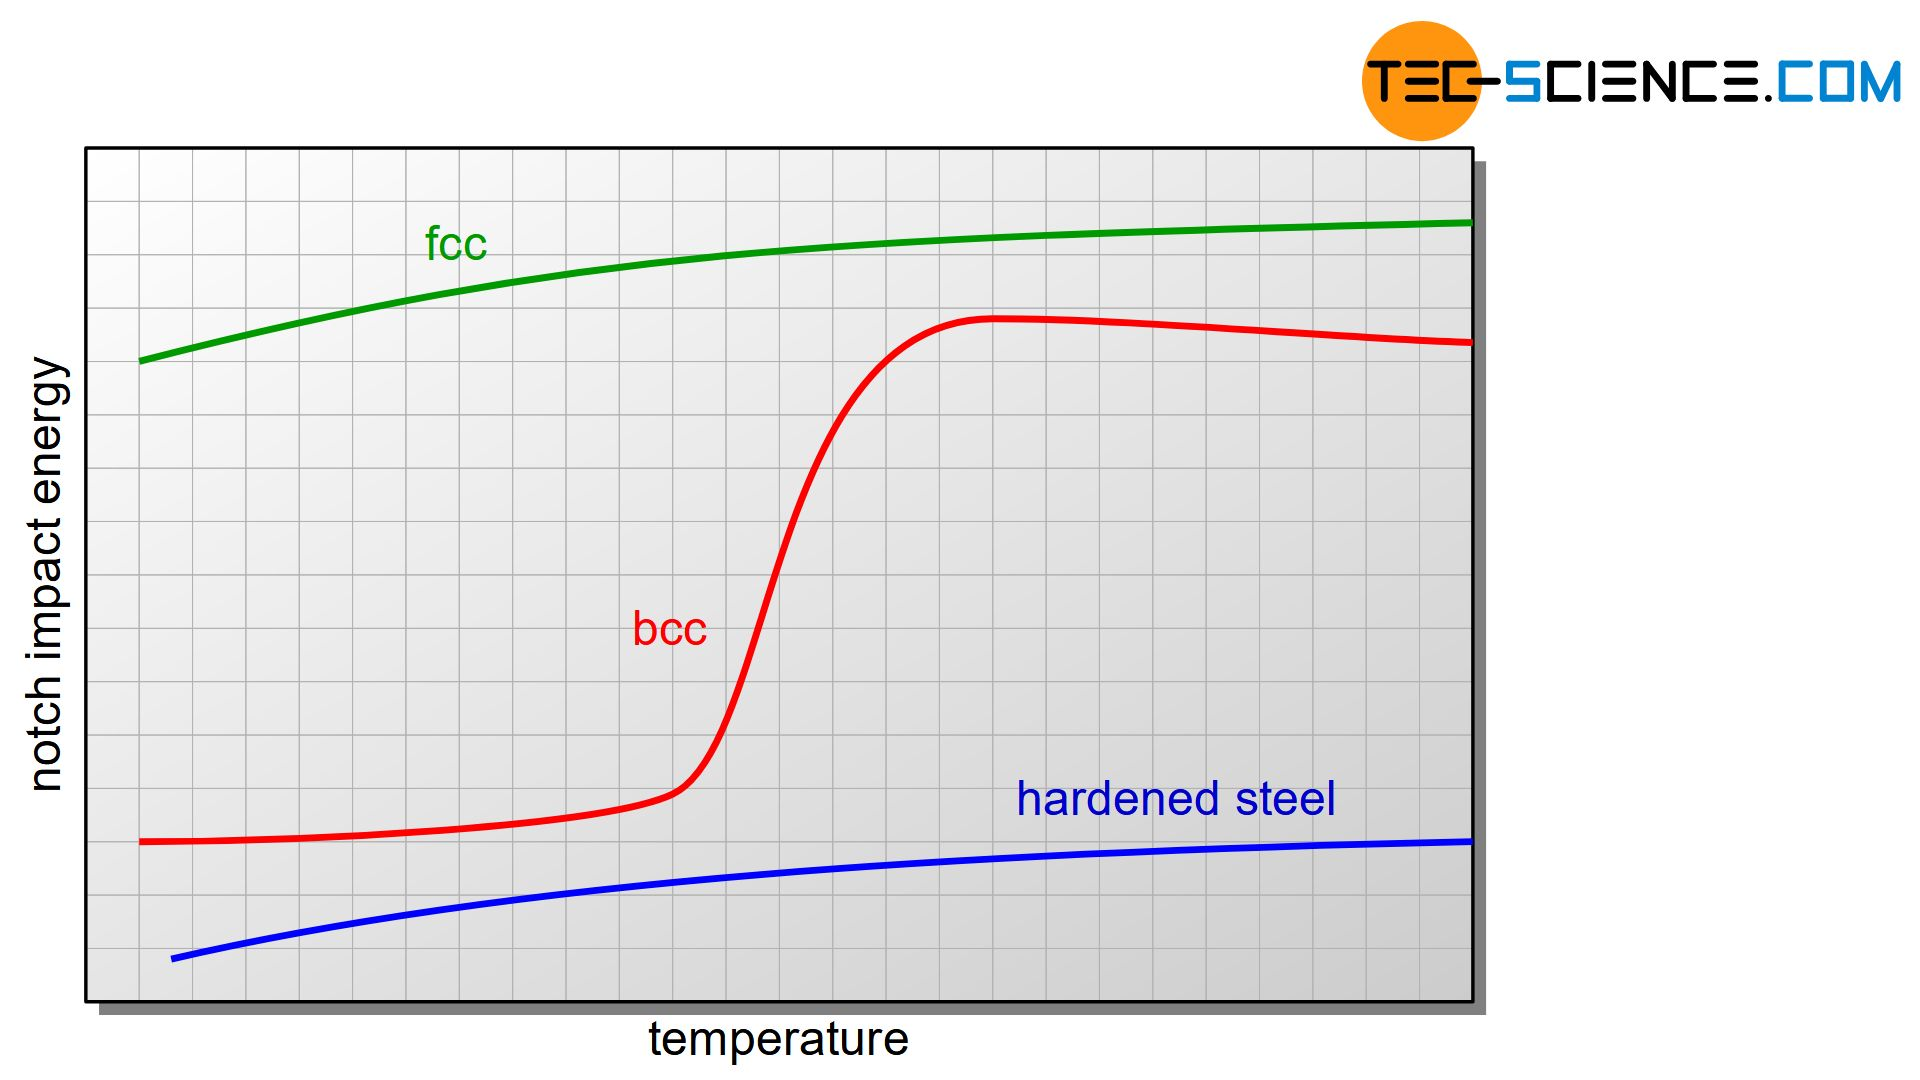 Notch impact energy as a function of temperature for different lattice structures